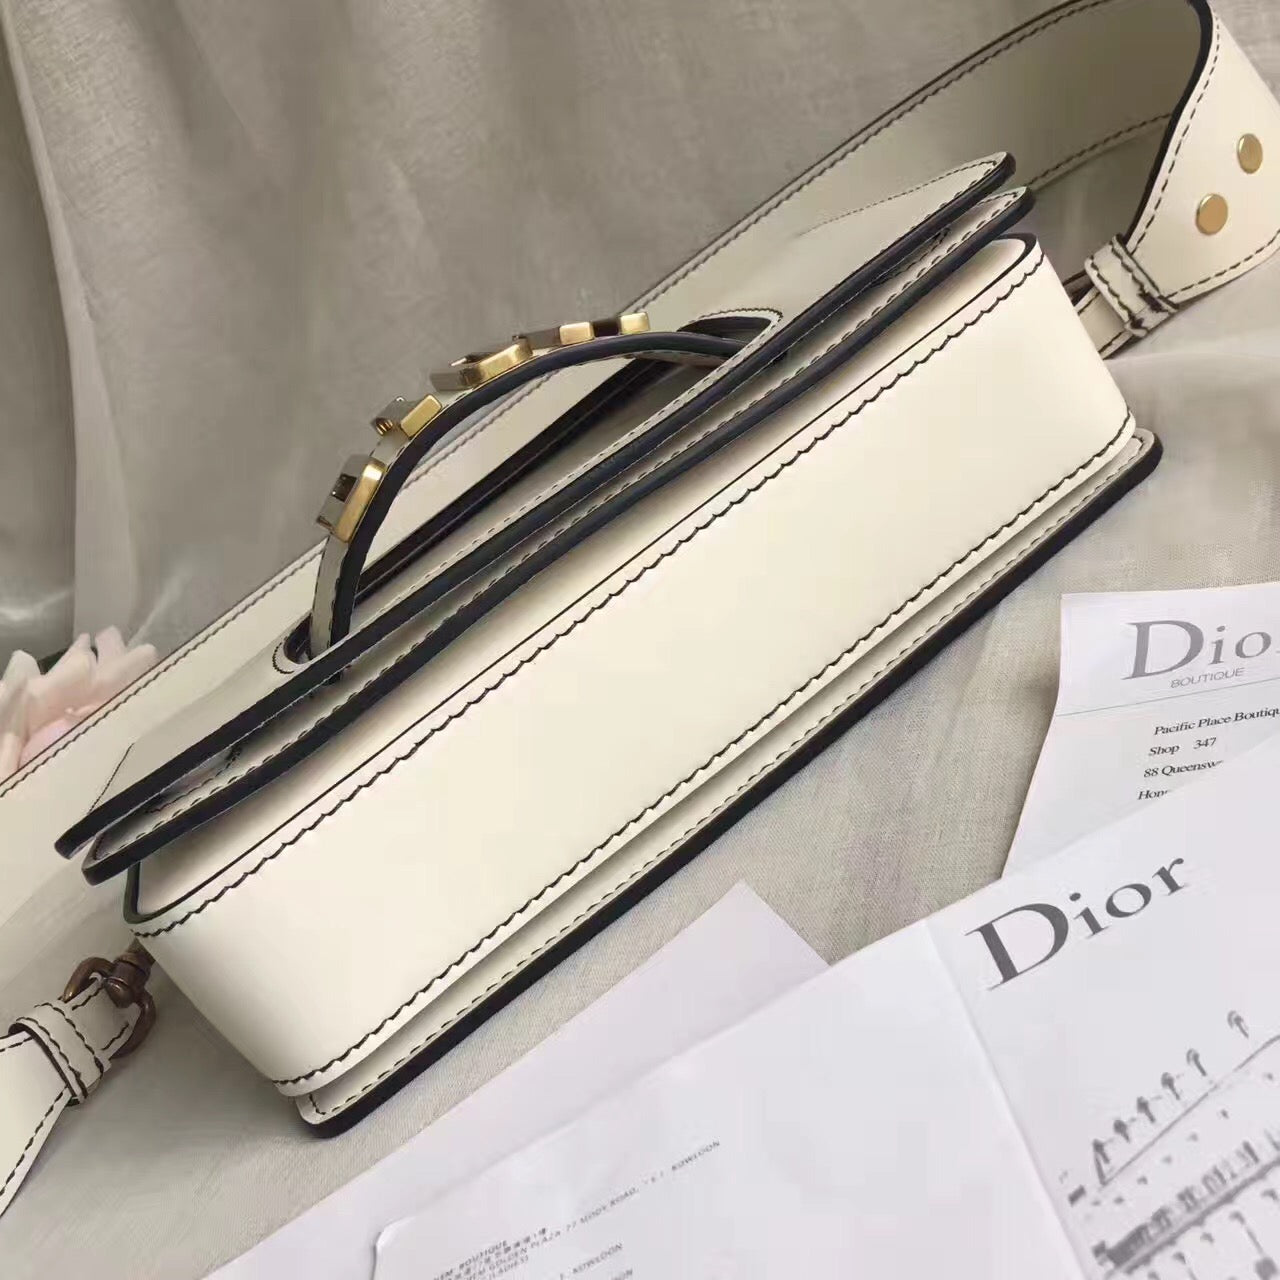 Dior R(evolution) flap bag Christian Dior - Loja Must Have